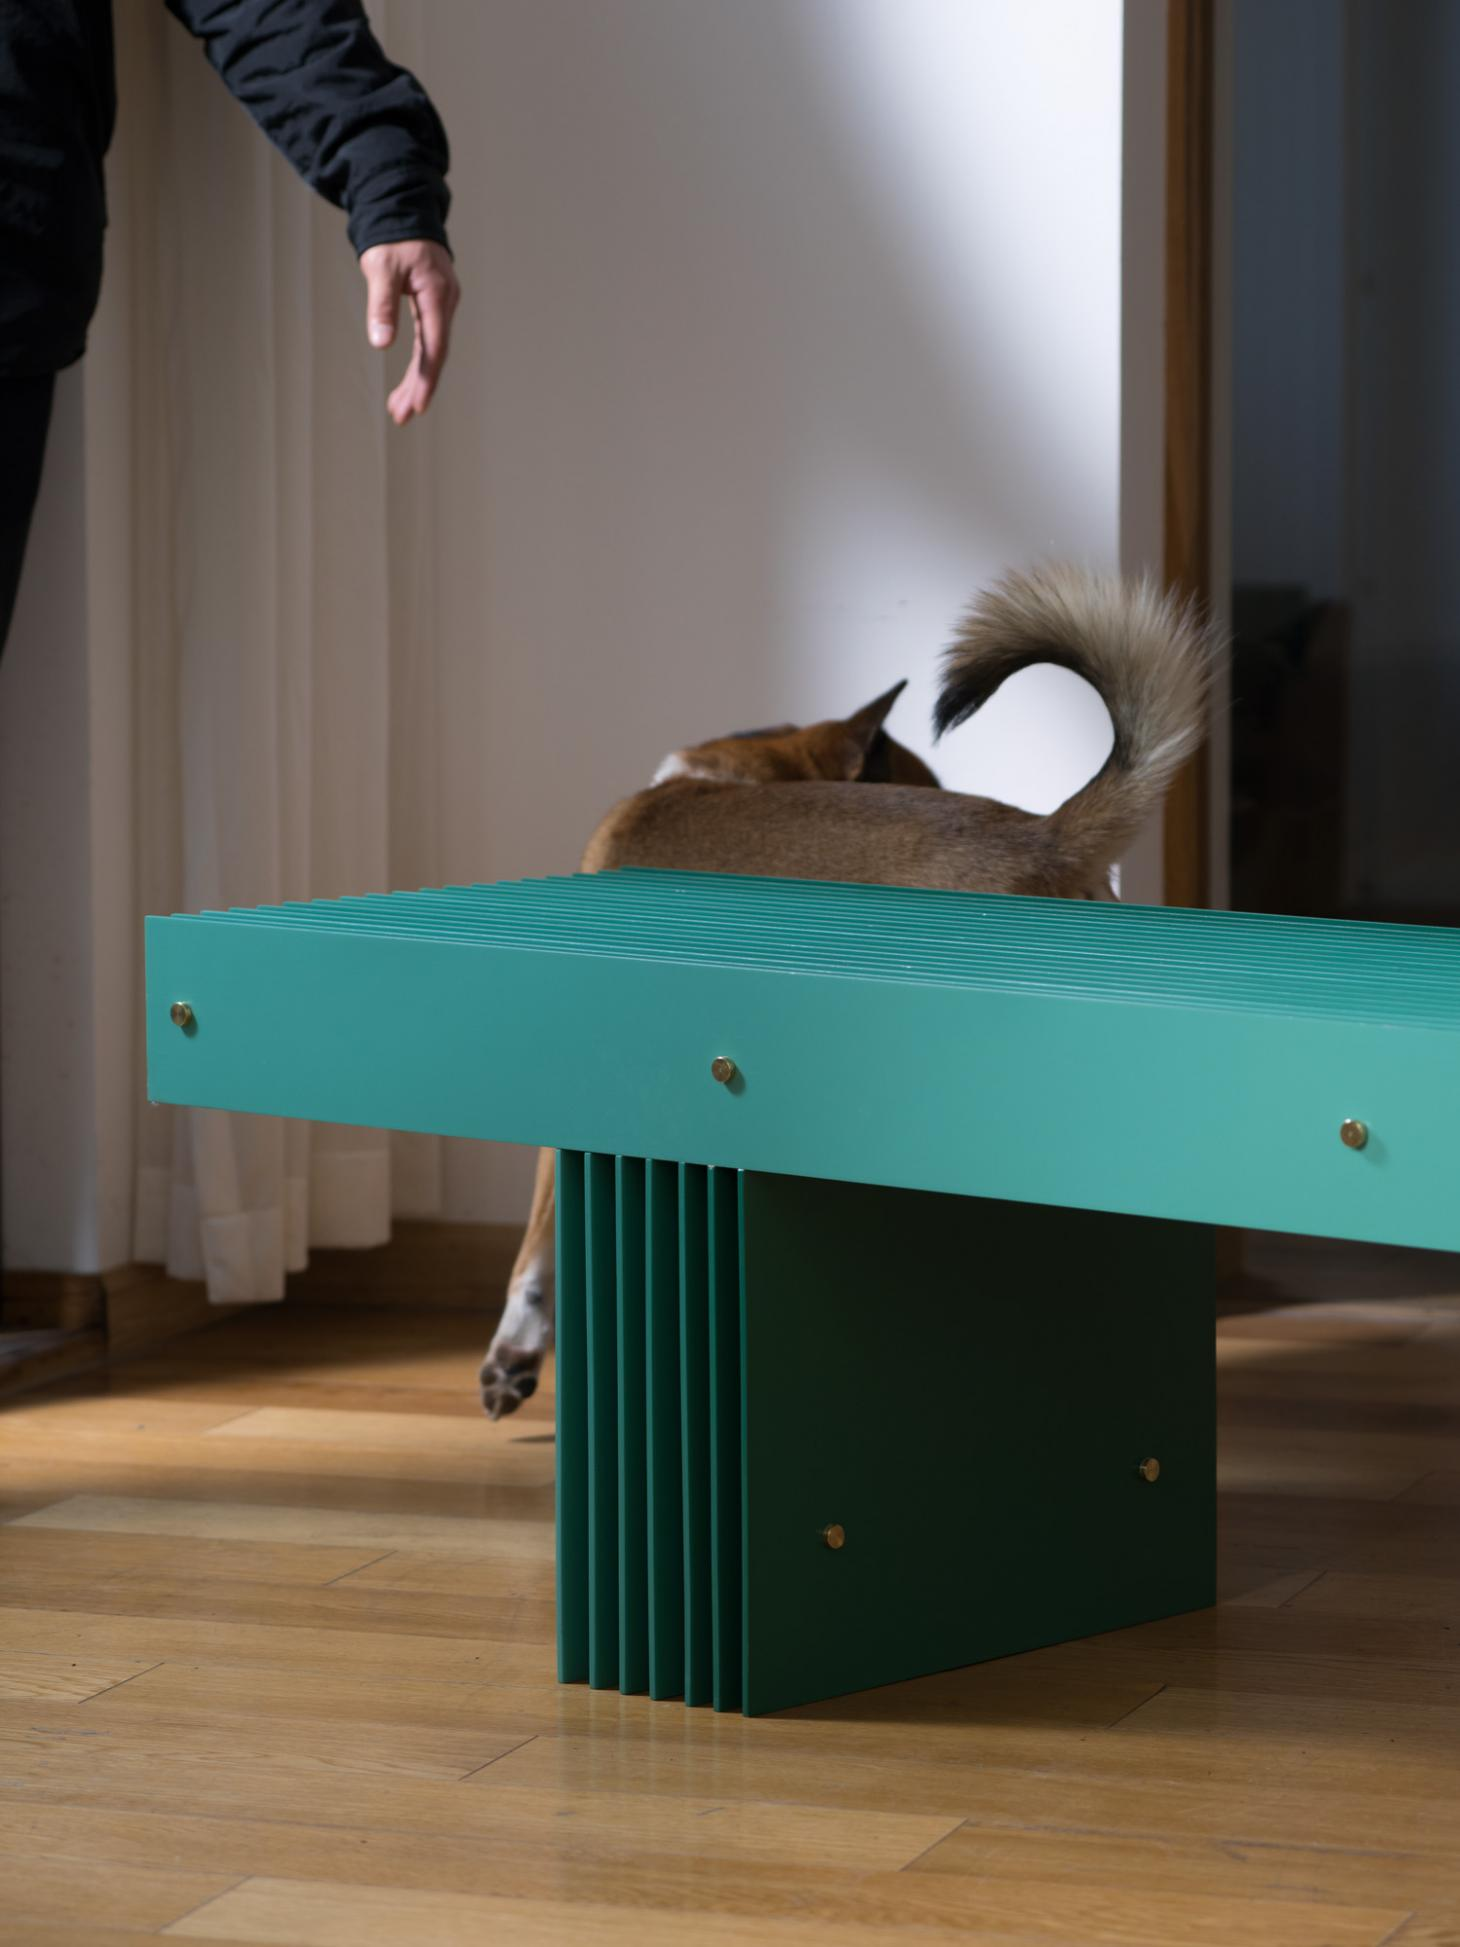 A green aluminium bench photographed in Mario Tsai's studio, visible is the designer's hand and his dog behind the bench